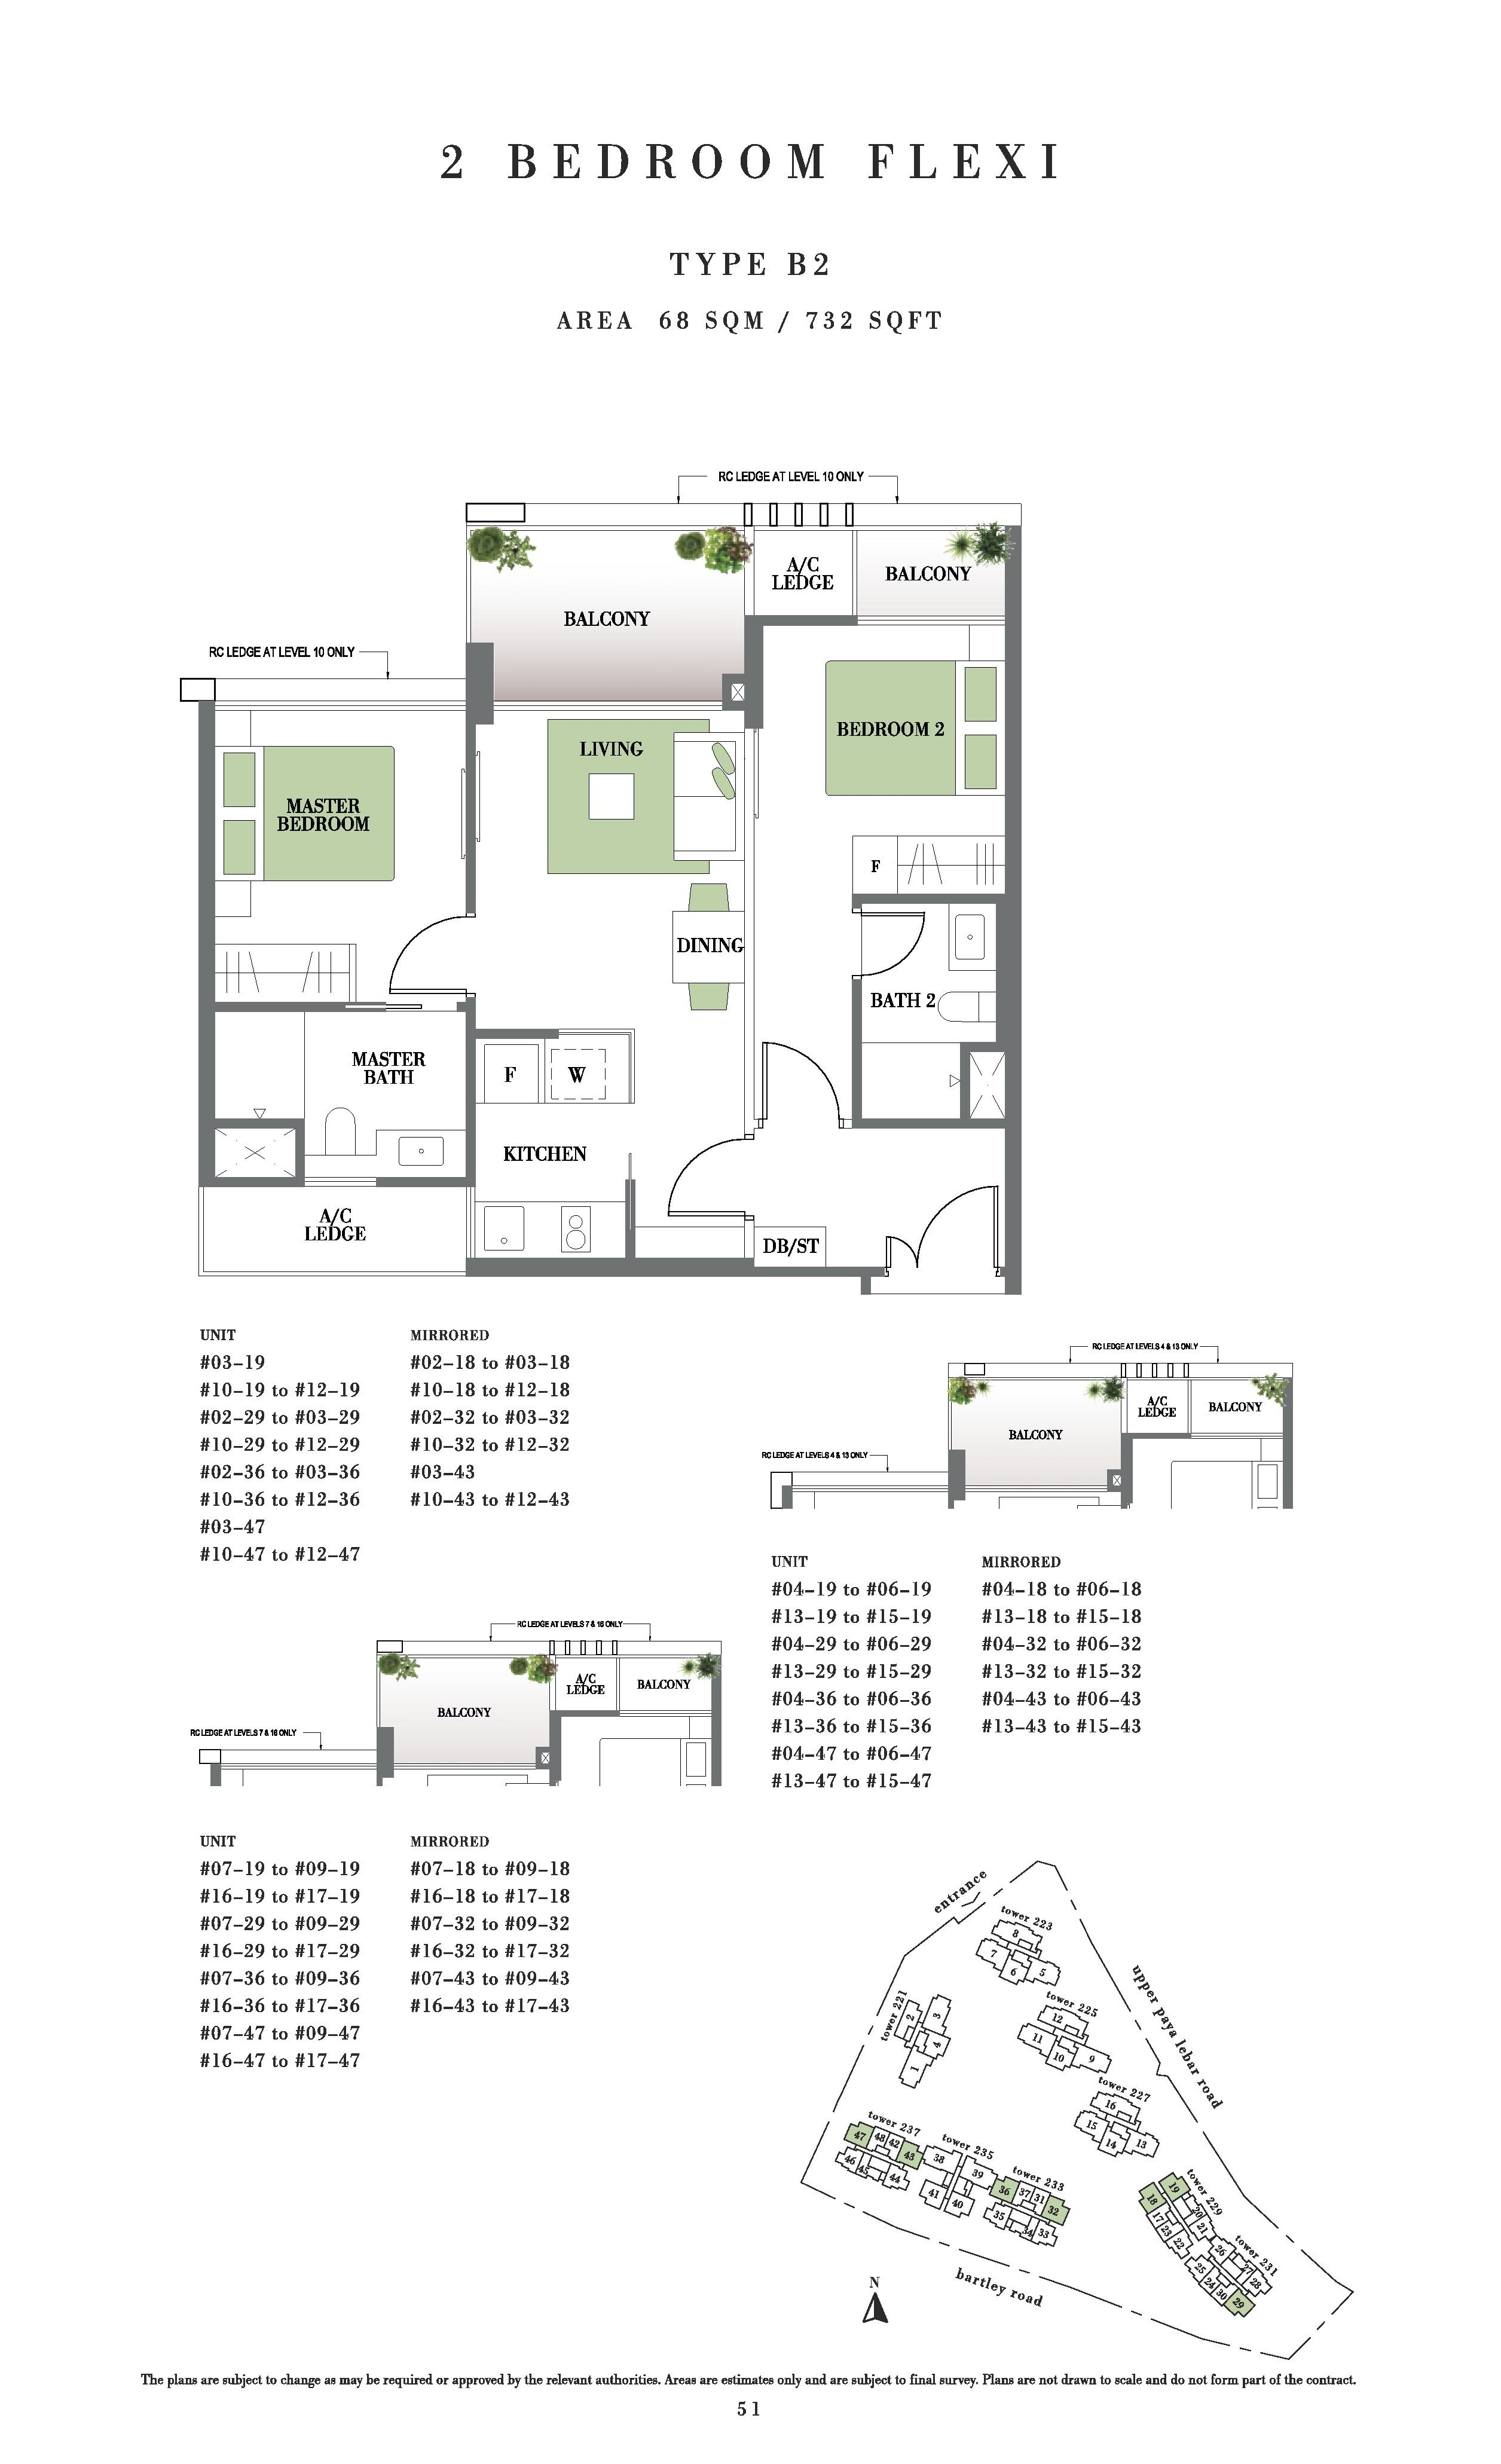 Botanique @ Bartley 2 Bedroom Flexi Floor Plans Type B2